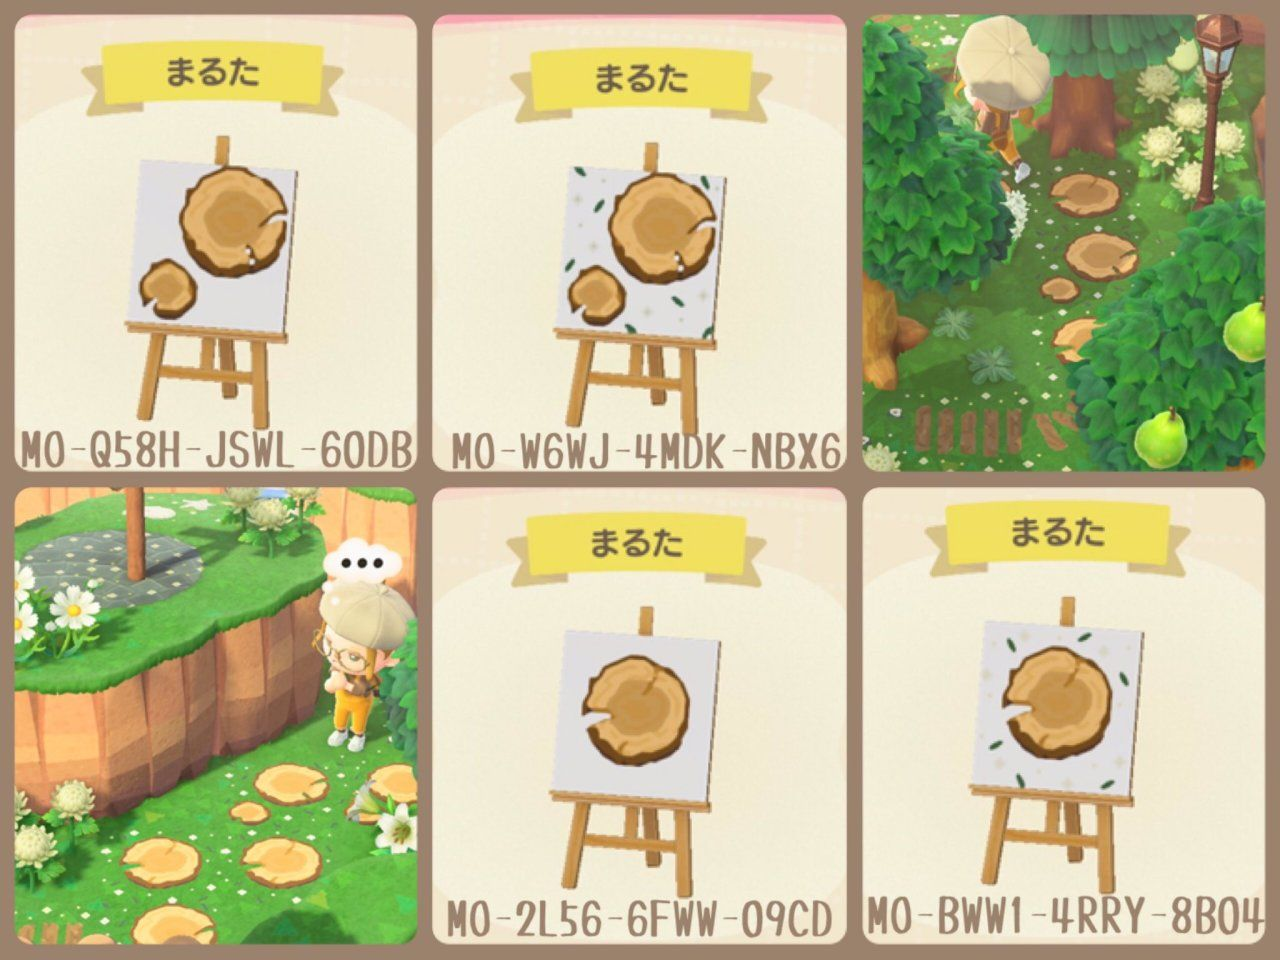 Brick Path Pattern for Animal Crossing New Horizons   Animal crossing, Animal crossing